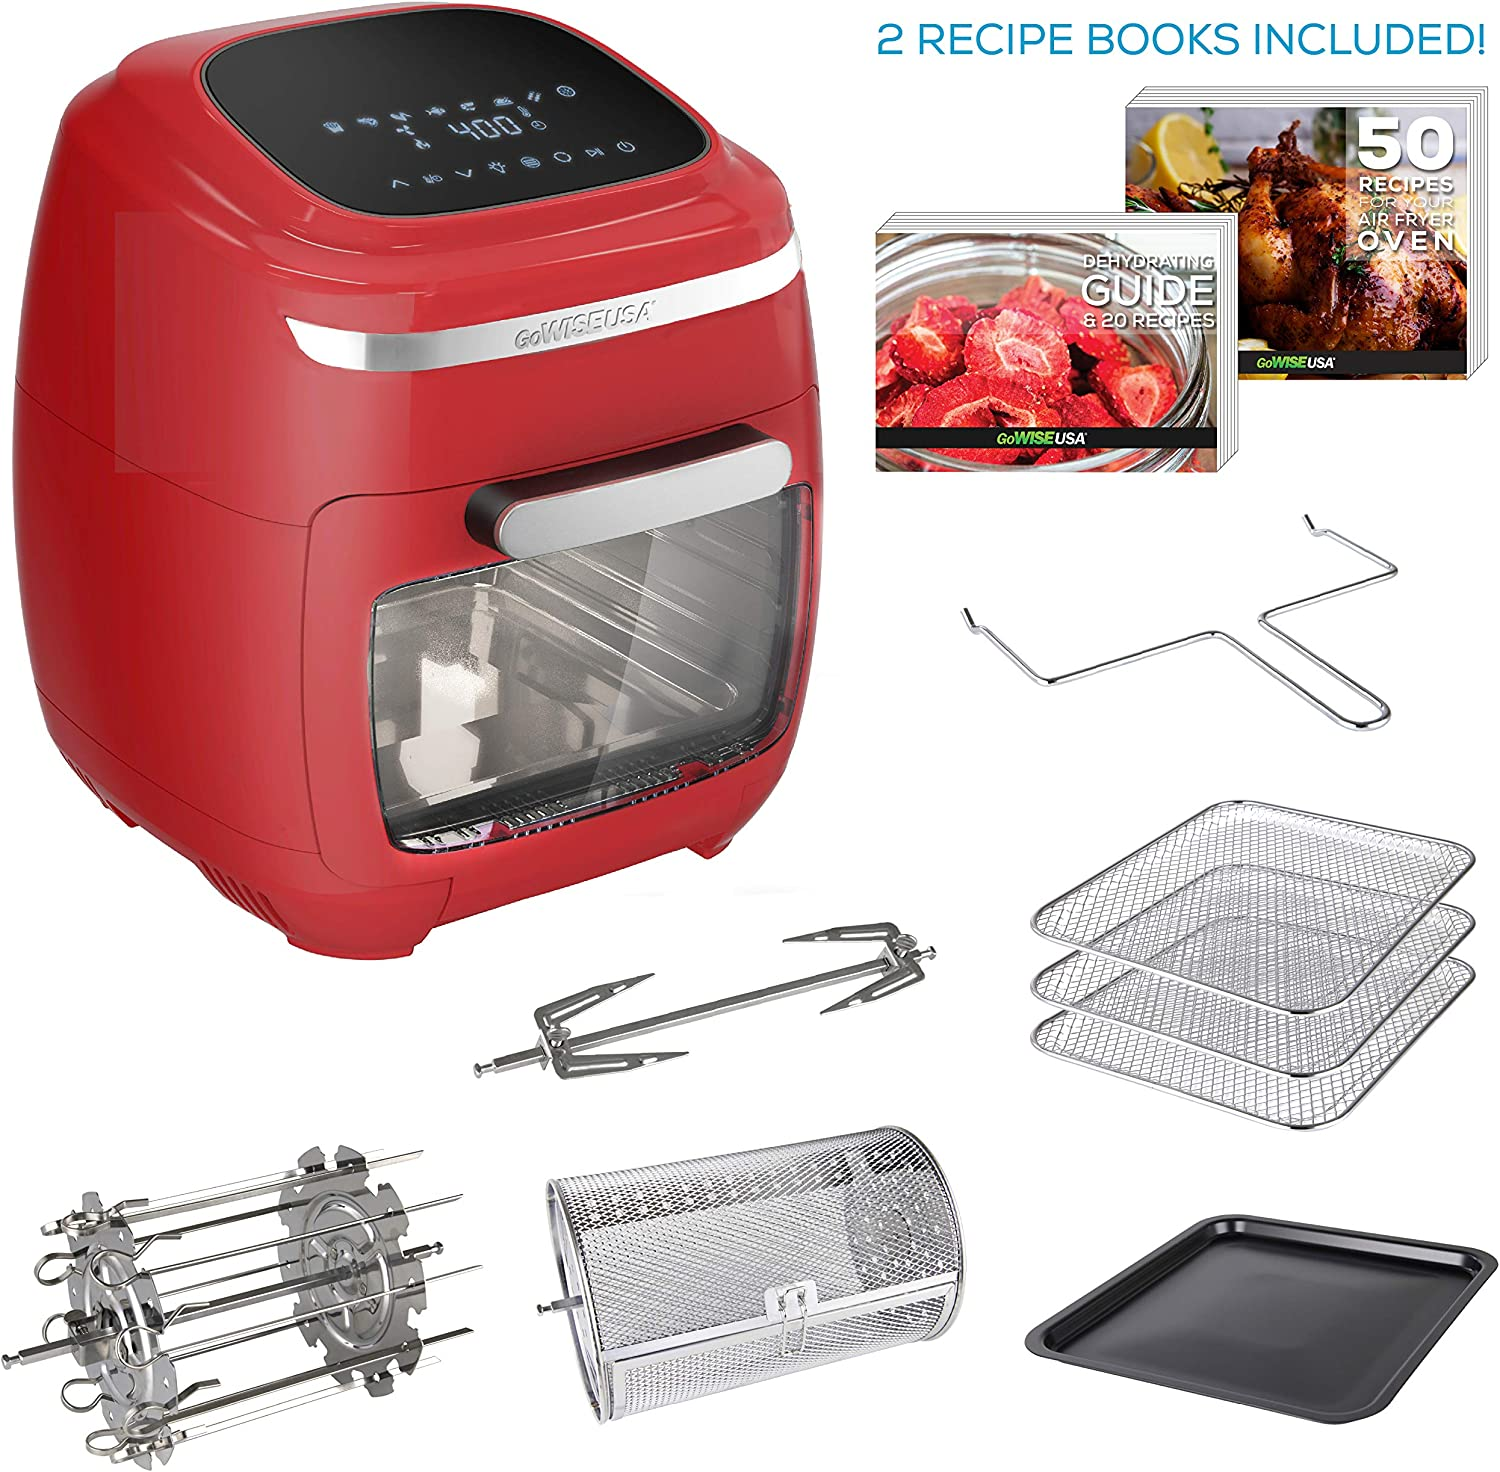 GoWISE USA 11.6-Quart Air Fryer Toaster Oven with Rotisserie & Dehydrator + 50 Recipes (Red)